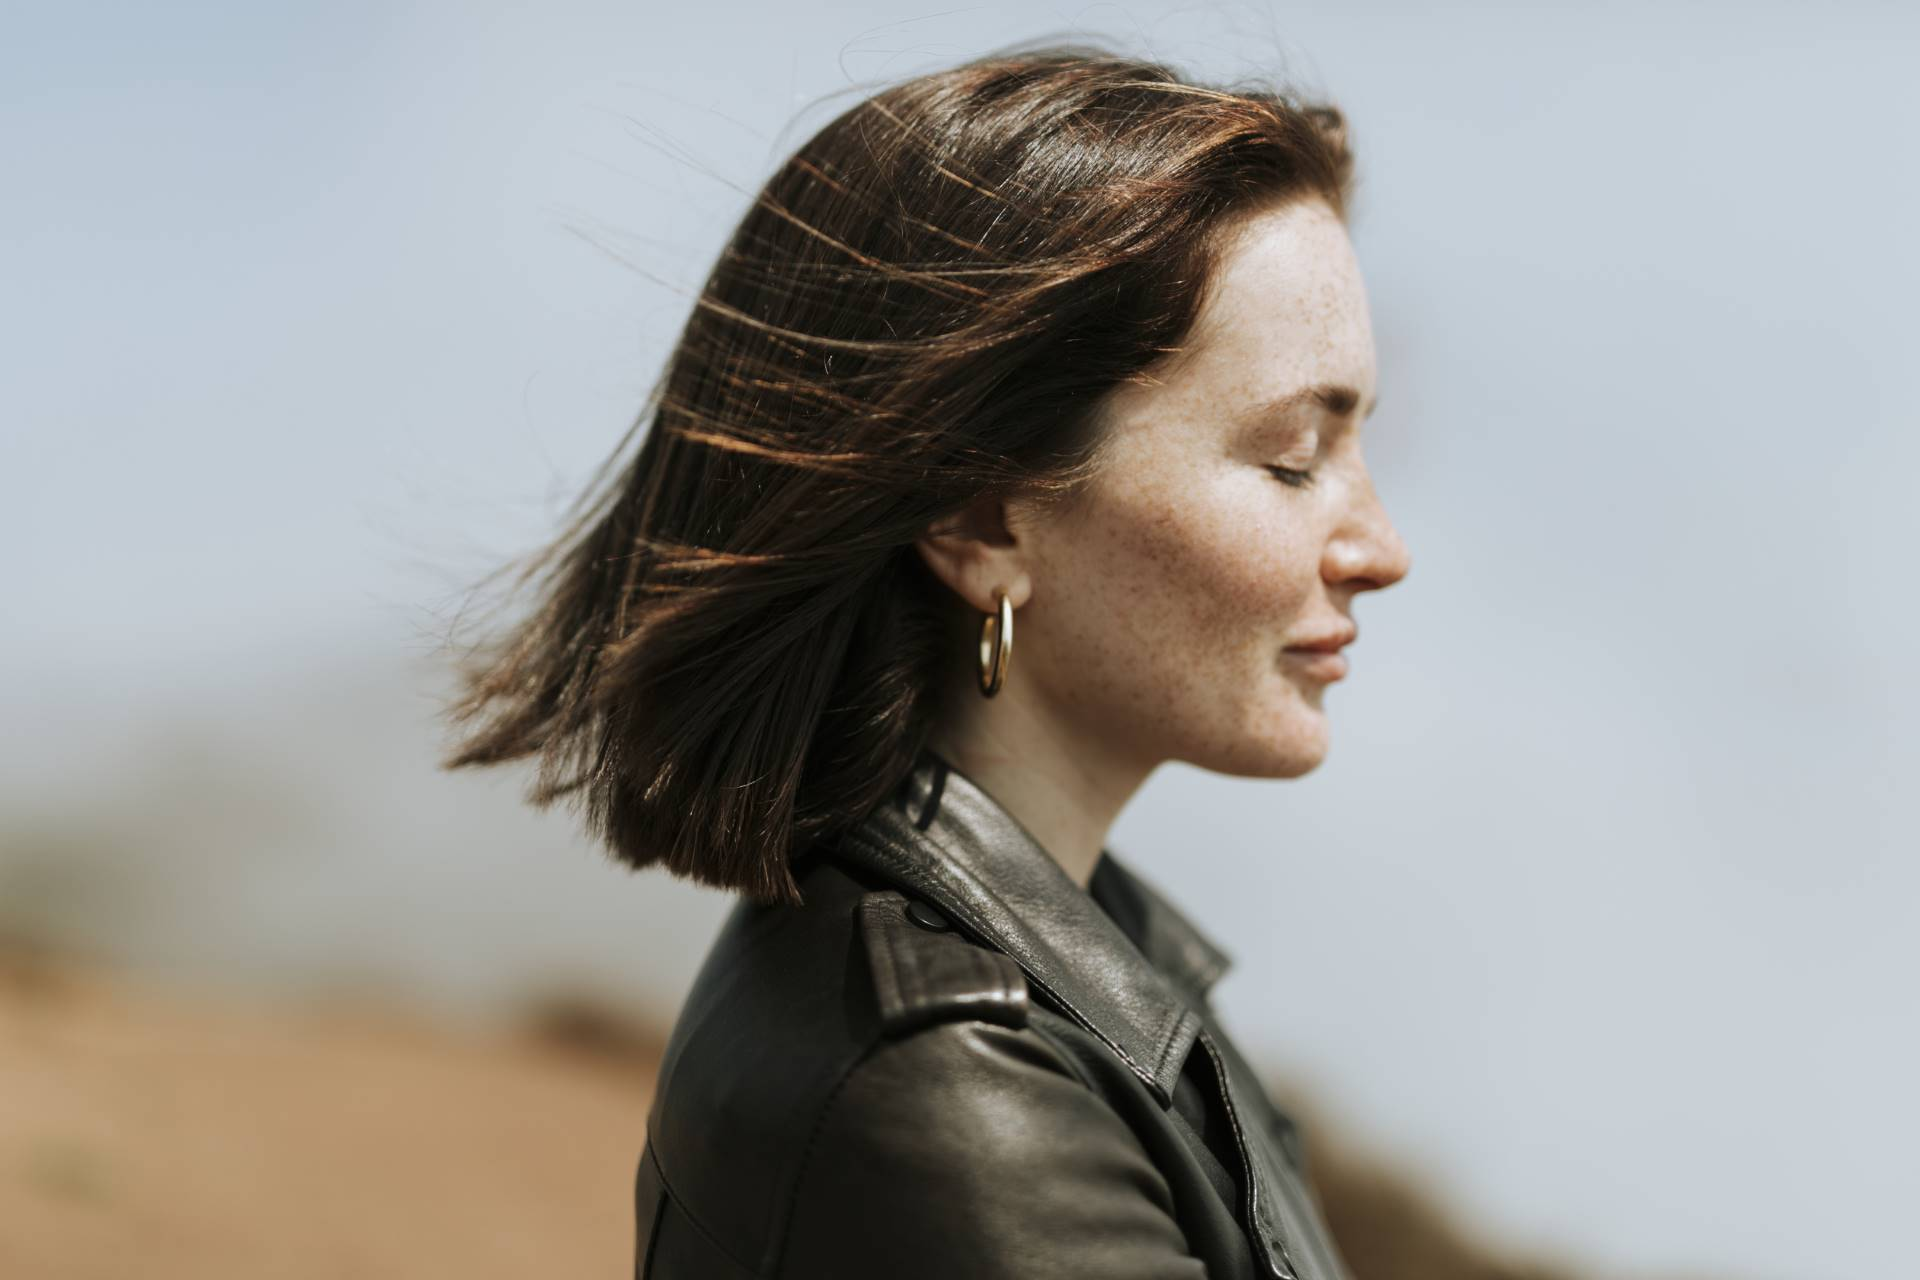 Side view of  a woman in leather jacket standing in a park